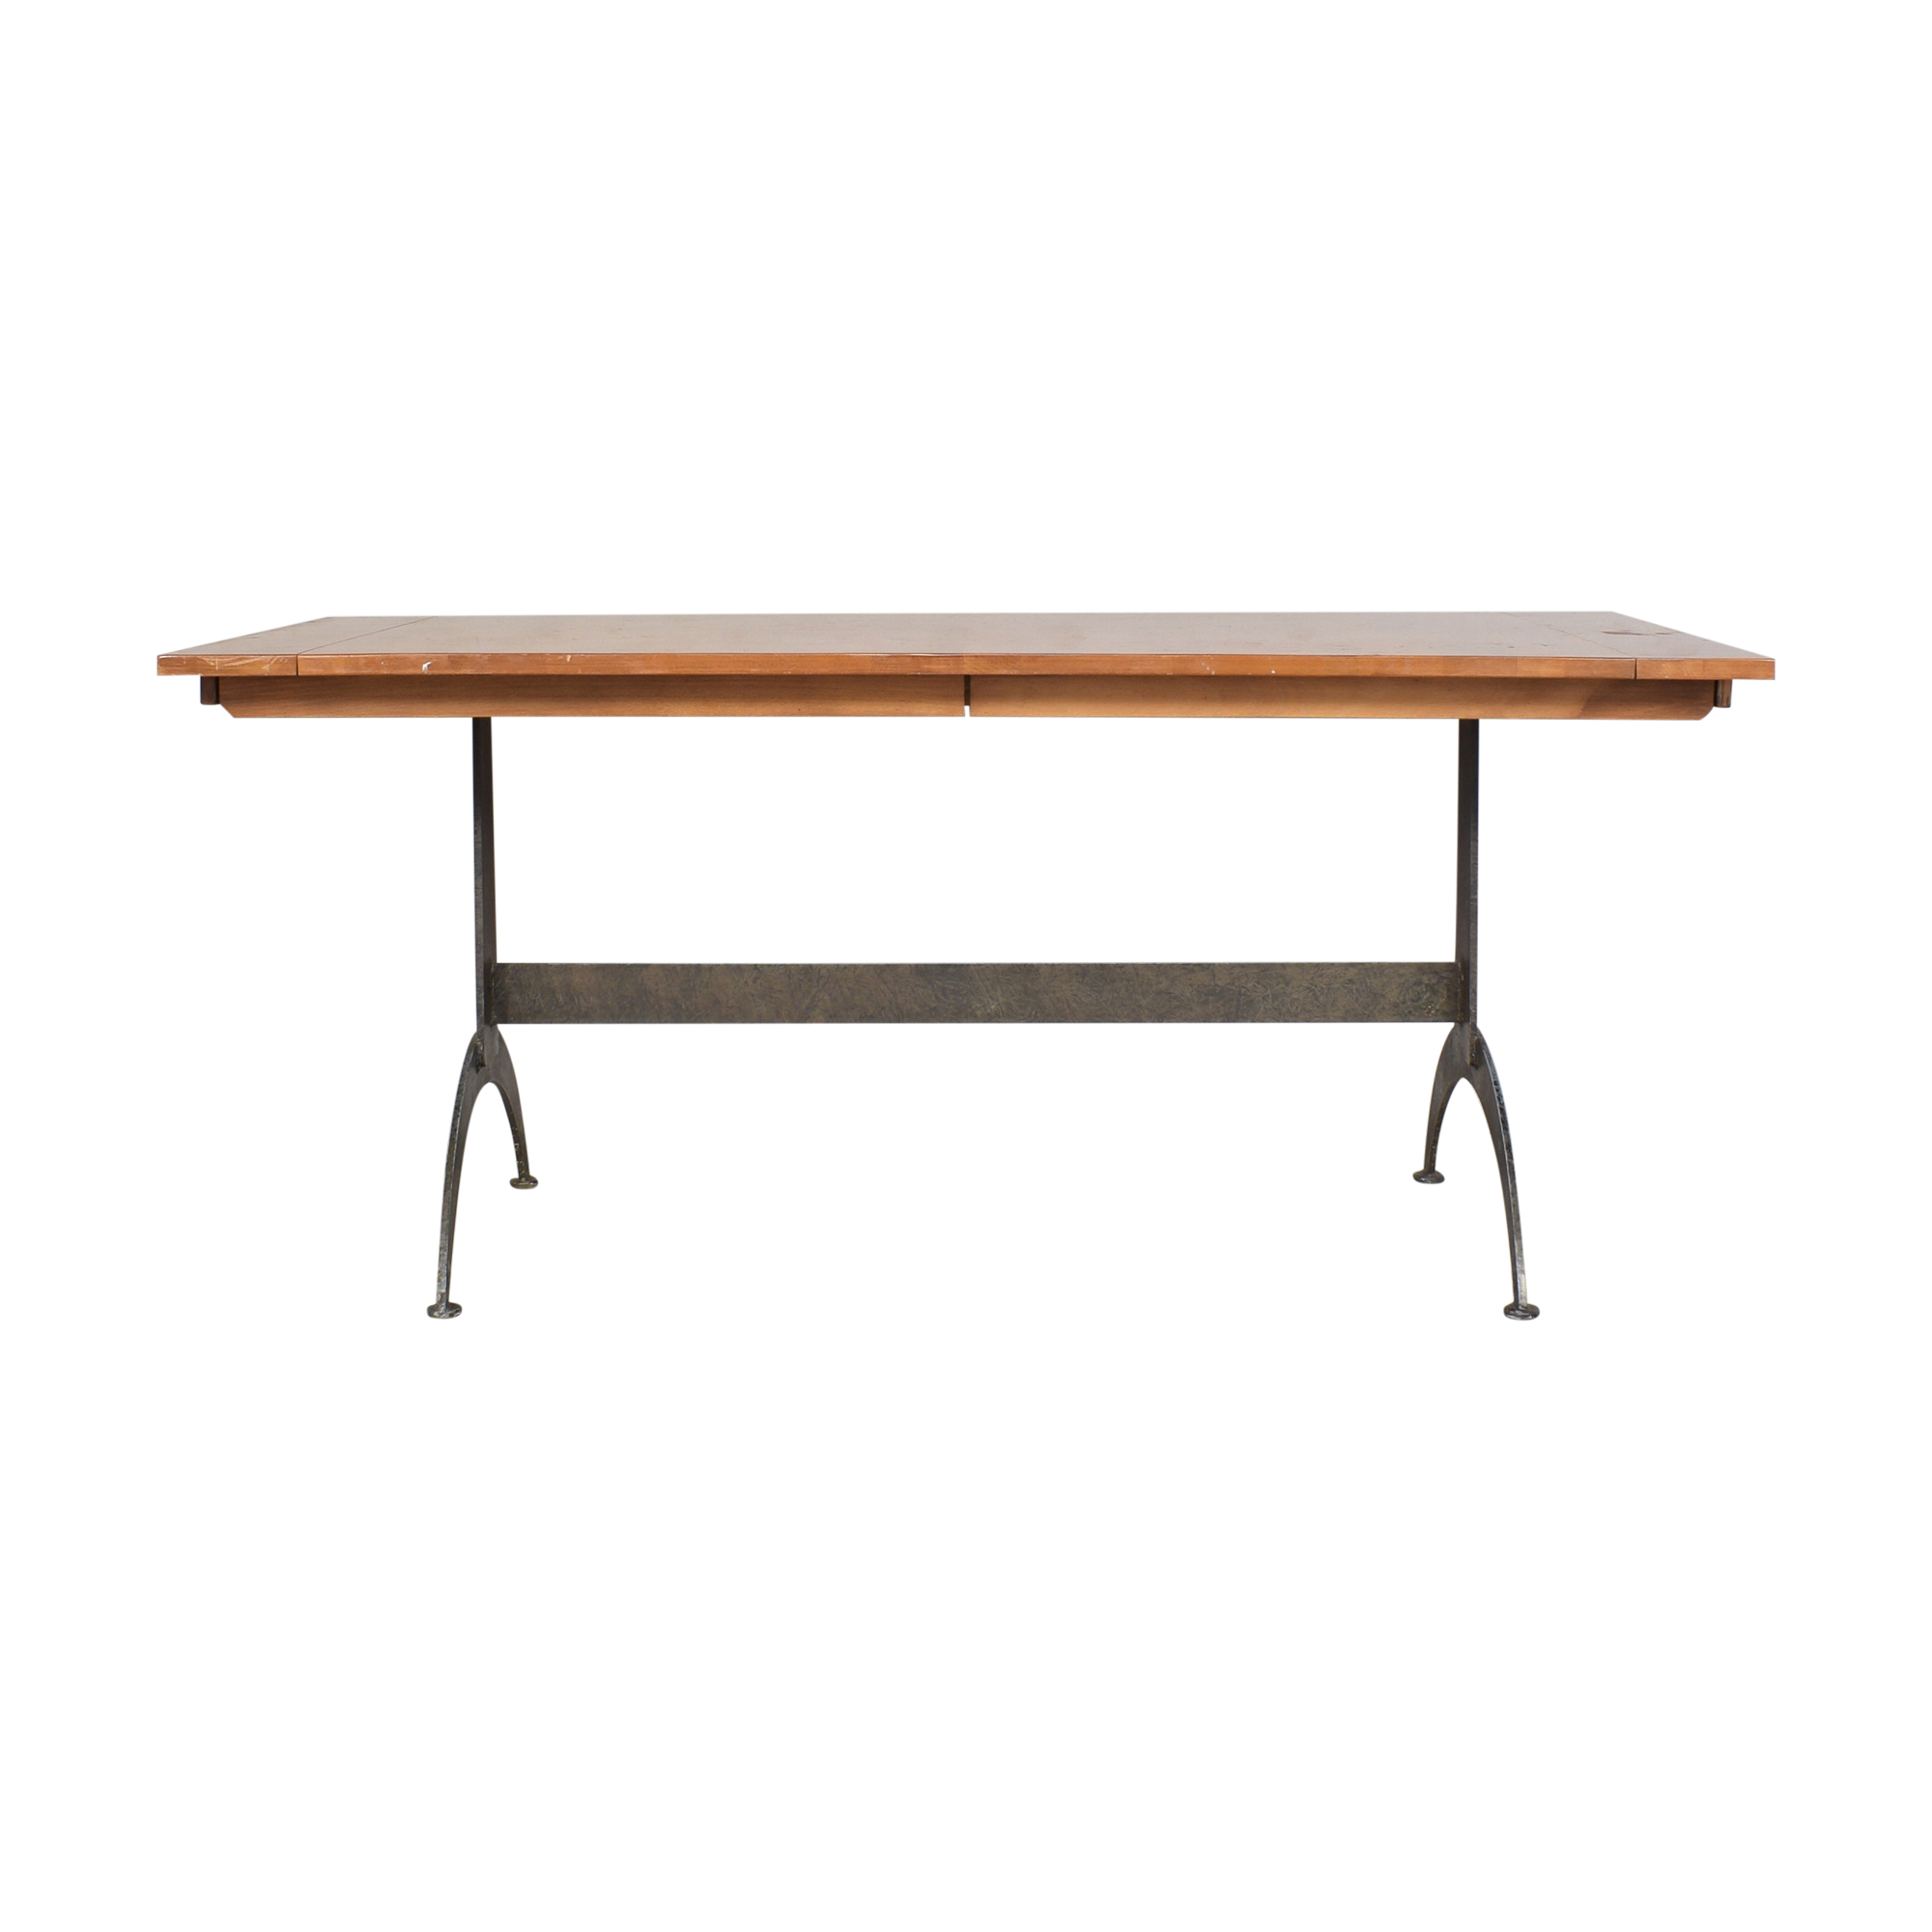 Ethan Allen Ethan Allen American Impressions Extendable Dining Table price